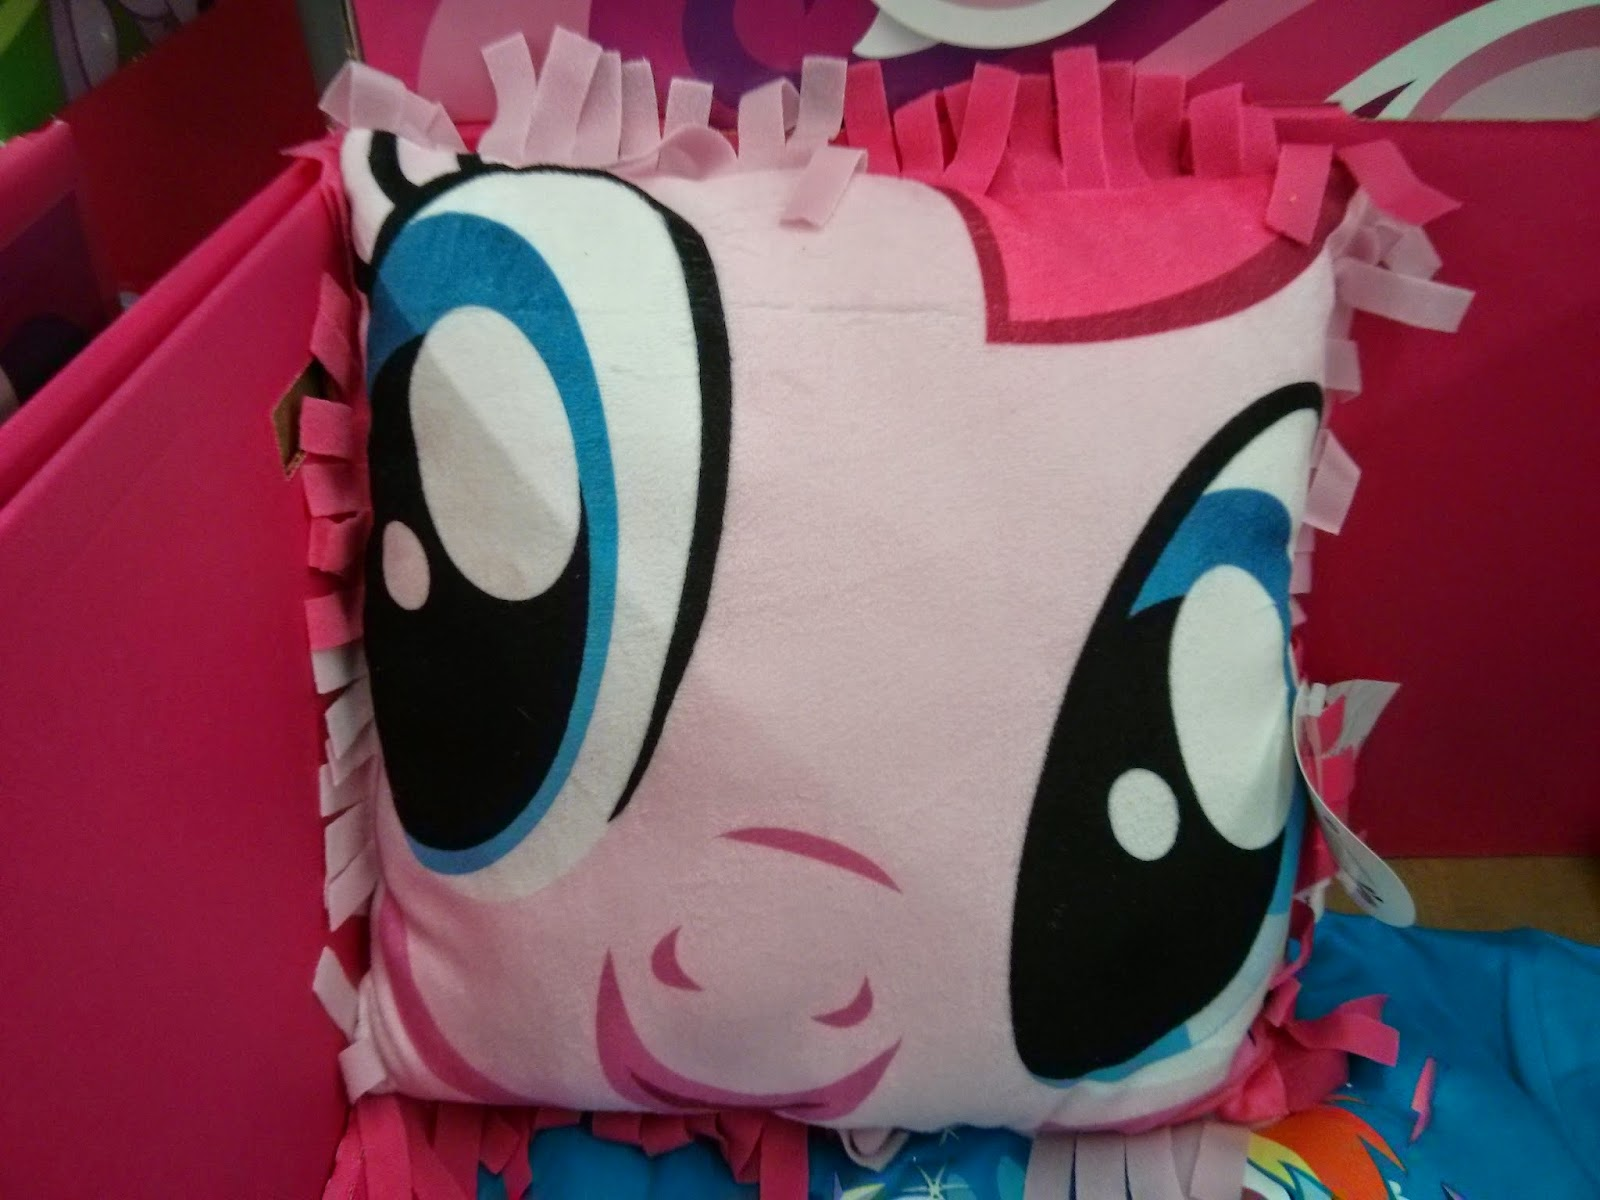 Giant Pony Face Pillows At Walmart